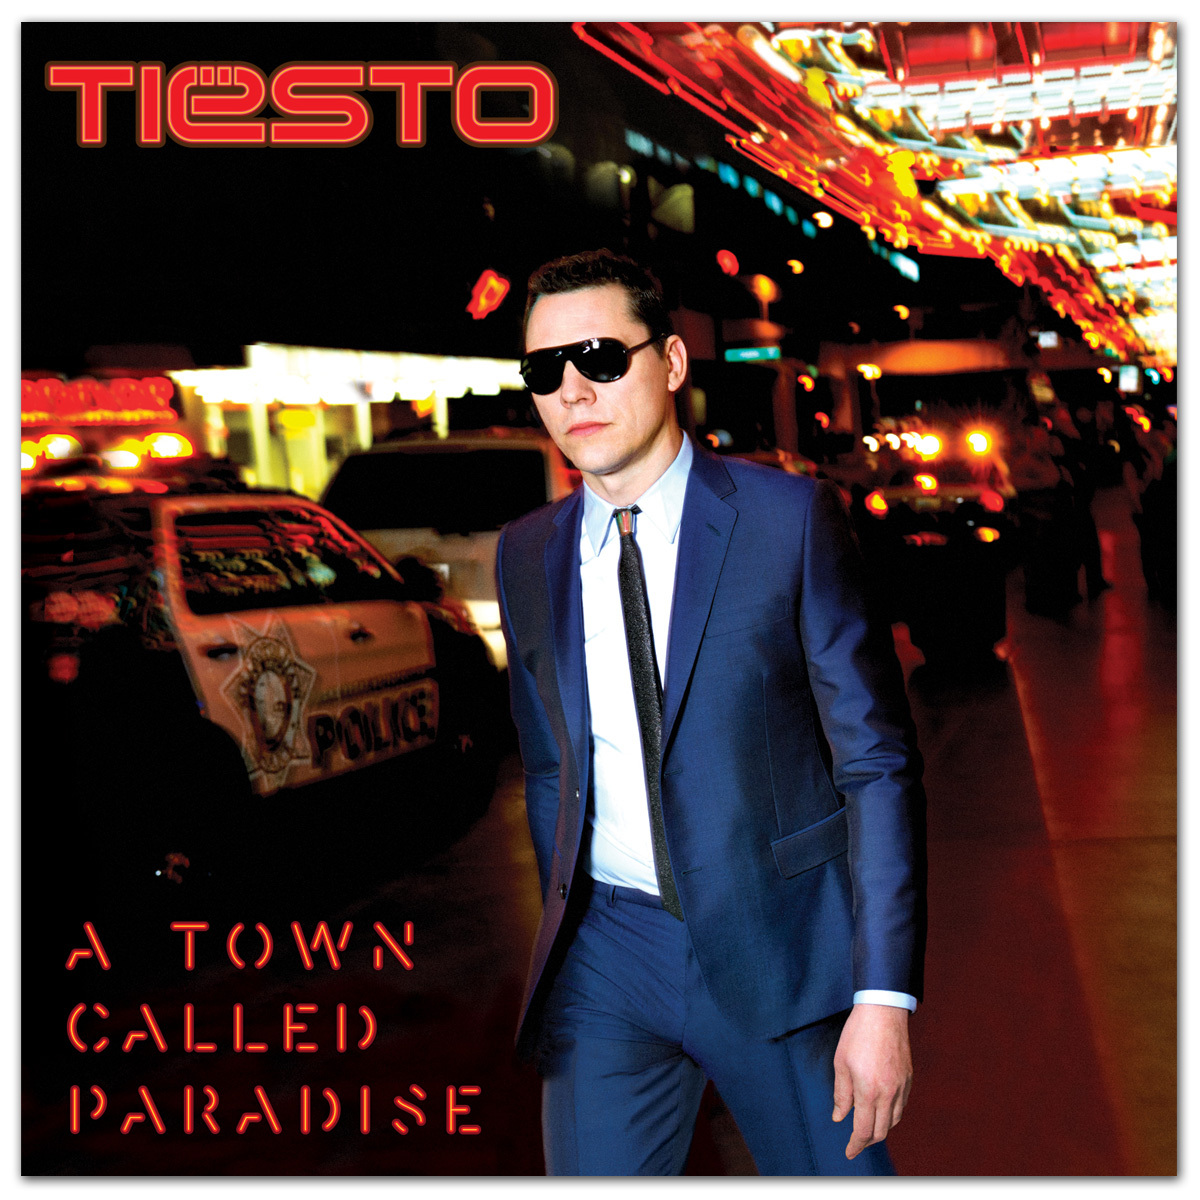 Tiësto - A Town Called Paradise CD [US Customers Only]